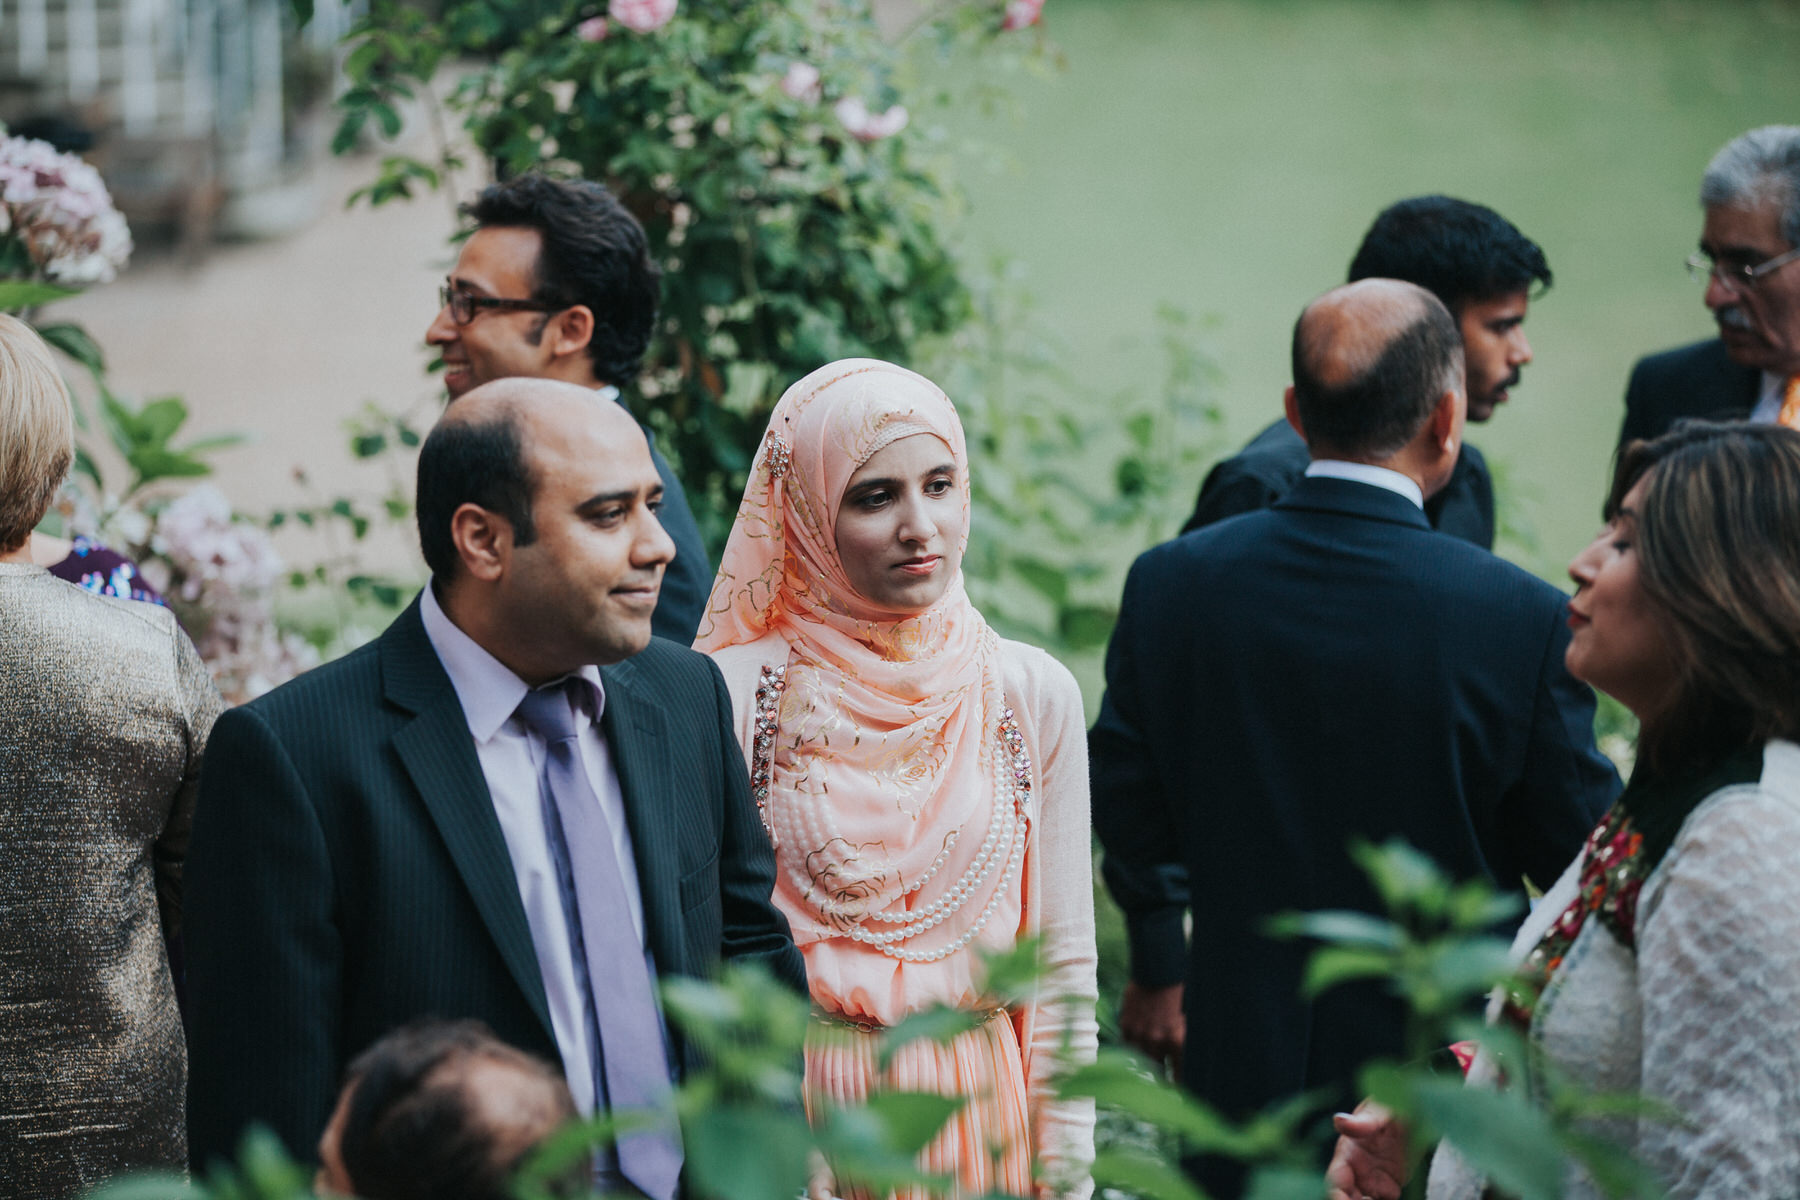 127-Anglo-Asian-Wedding-Middle-temple-guests-garden-photos.jpg